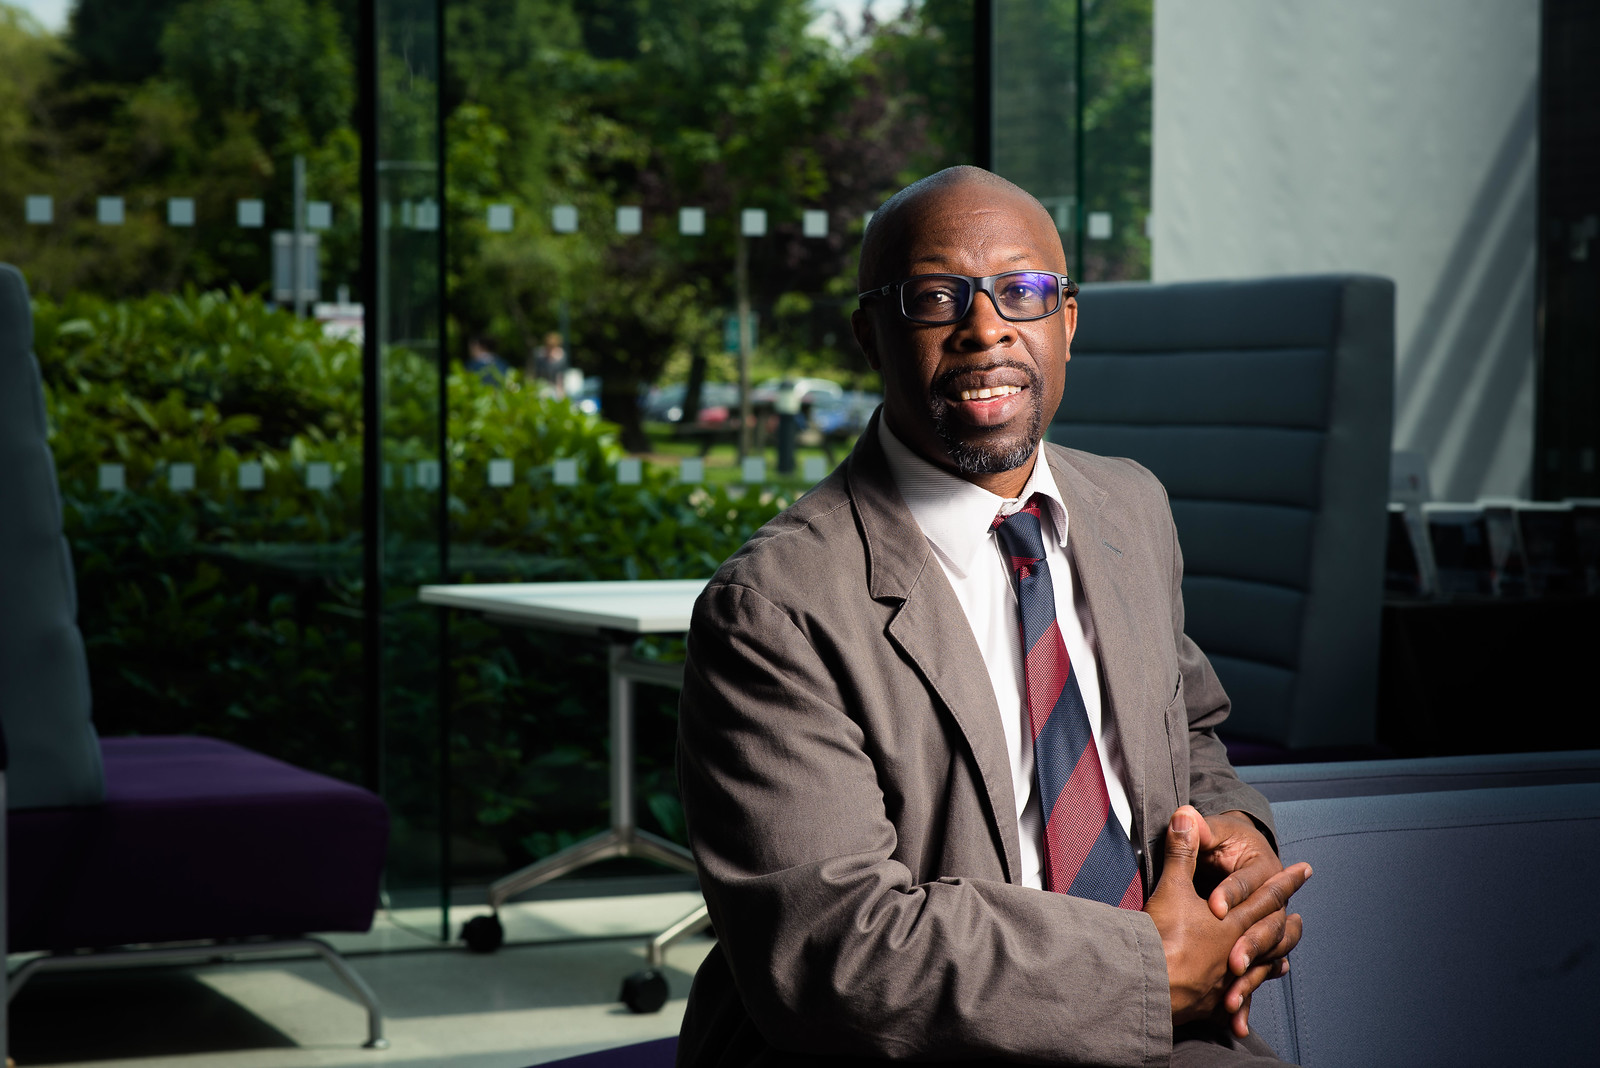 Kevin Hylton, Head of the Centre for Diversity & Inclusion, Leeds Beckett University